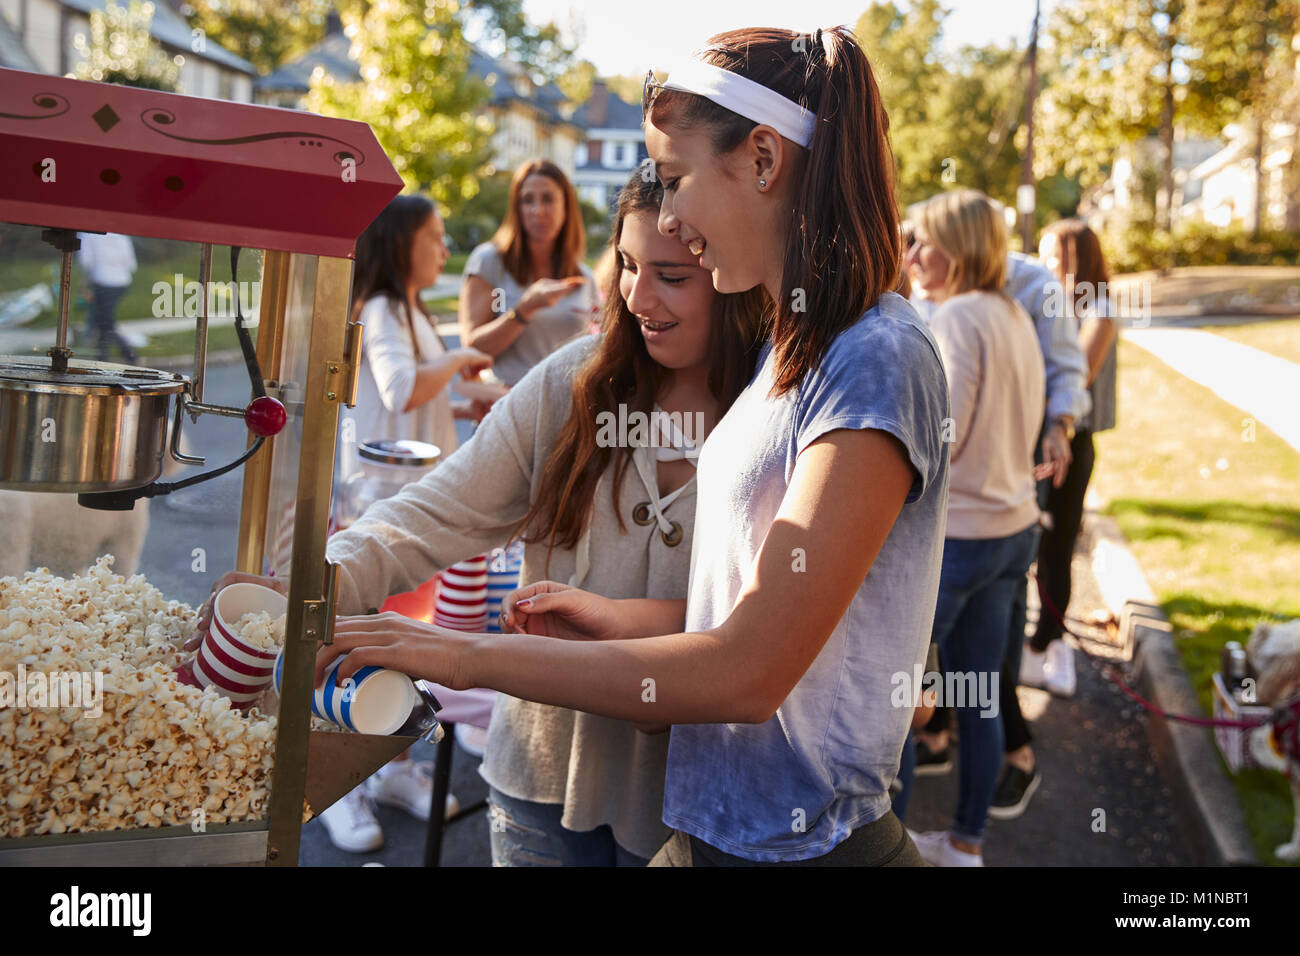 Girls serve themselves popcorn at neighbourhood block party - Stock Image